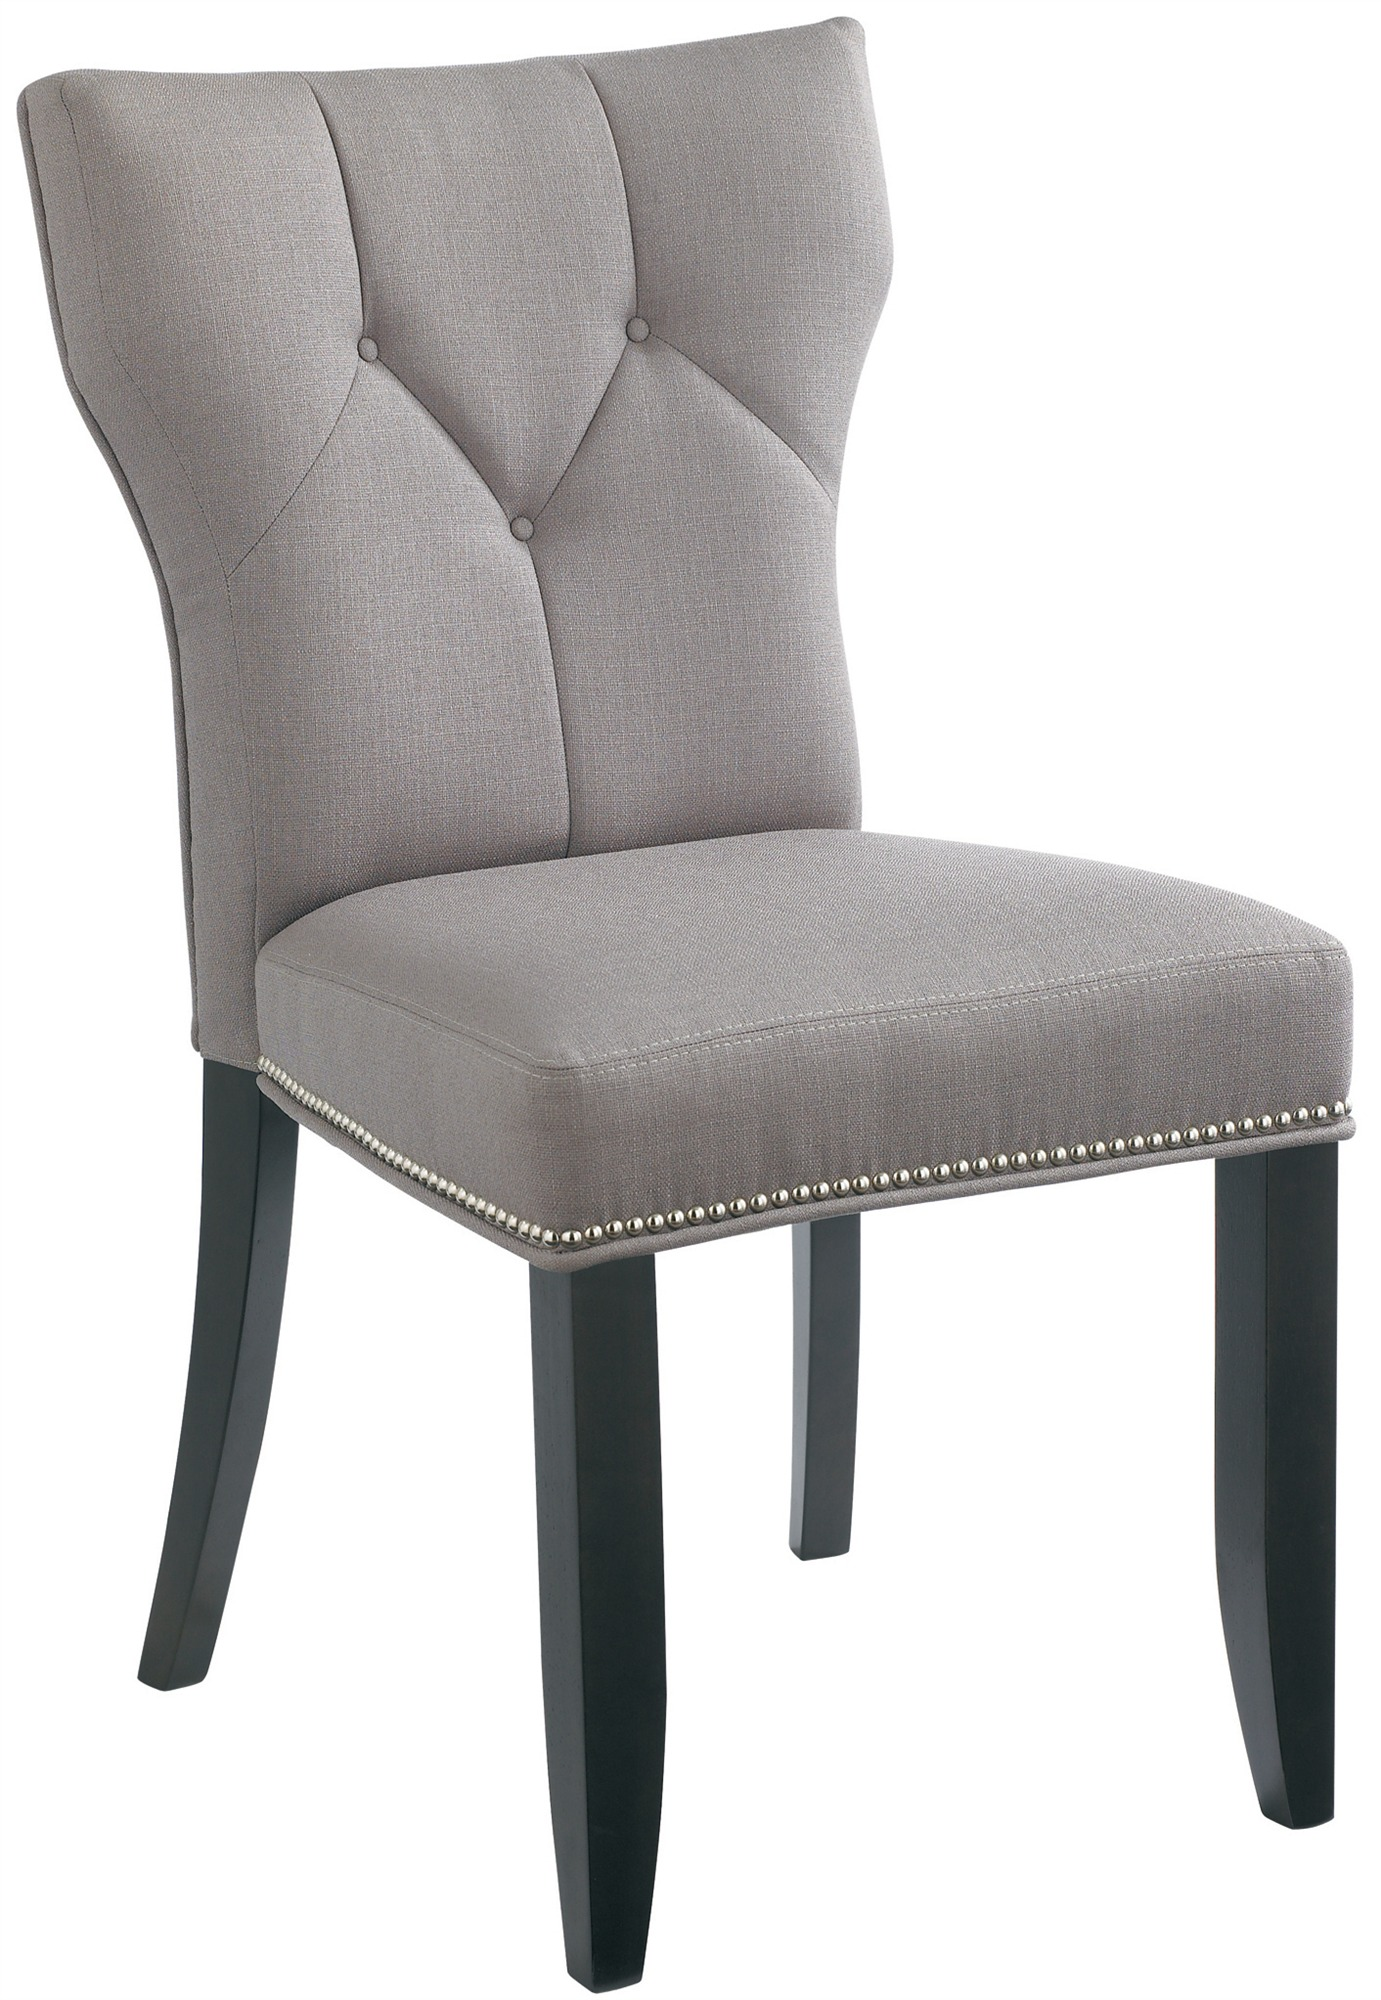 tufted wingback dining chair office mat for carpet room enchanting home